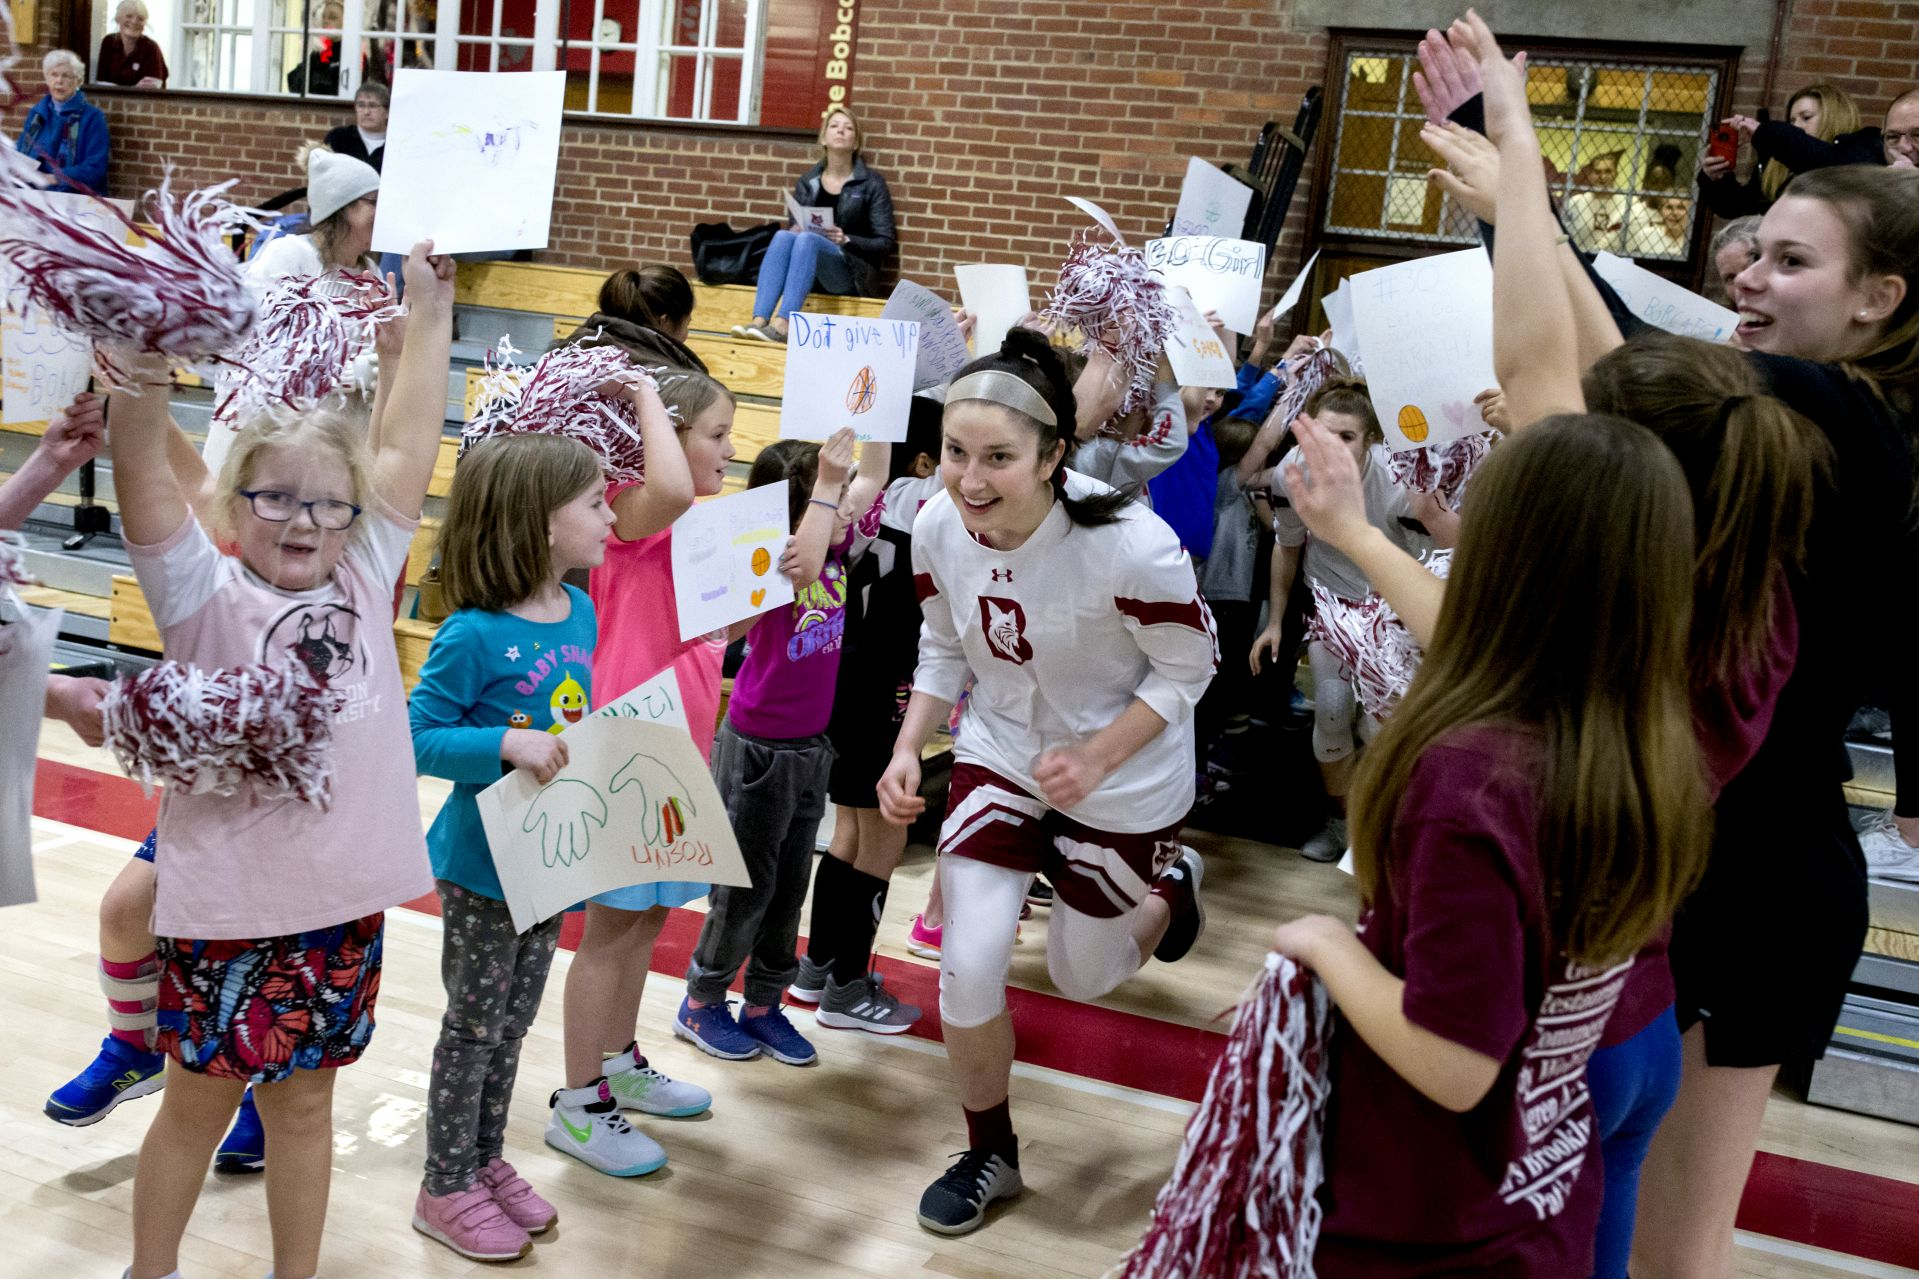 National Girls and Women in Sports Day held in the Gray Cage followed by the women's basketball game vs. Trinity in Alumni GymRegistration begins at 12:30 pm in Alumni Gym lobby, and then the free sports clinics for girls ages 5 and up will take place in Gray Cage from 1-3. The plan is to have a large group warm up, then stations where student-athletes and coaches from various teams will have an activity related to their sport. I know last year rowing brought down some rowing machines, field hockey had a shooting into a goal station, things like that. There will also be a poster making station for the basketball game. In addition, the plan is to have time for the girls to get autographs from the women's basketball team prior to the game. The girls and their families are encouraged to attend the women's basketball game at 3 PM in Alumni Gym as the ending to the day!